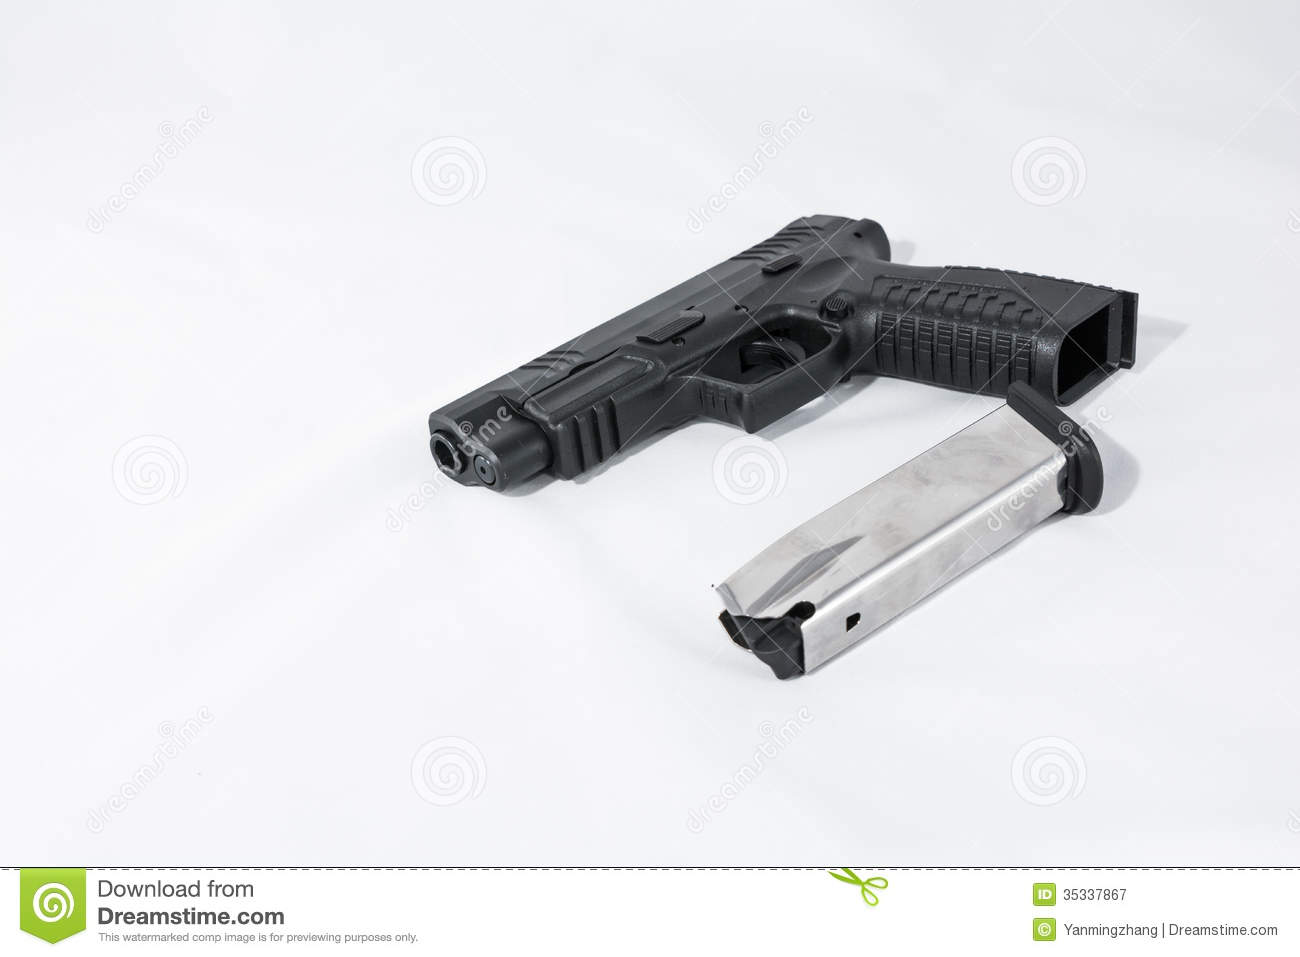 gun white background - photo #45